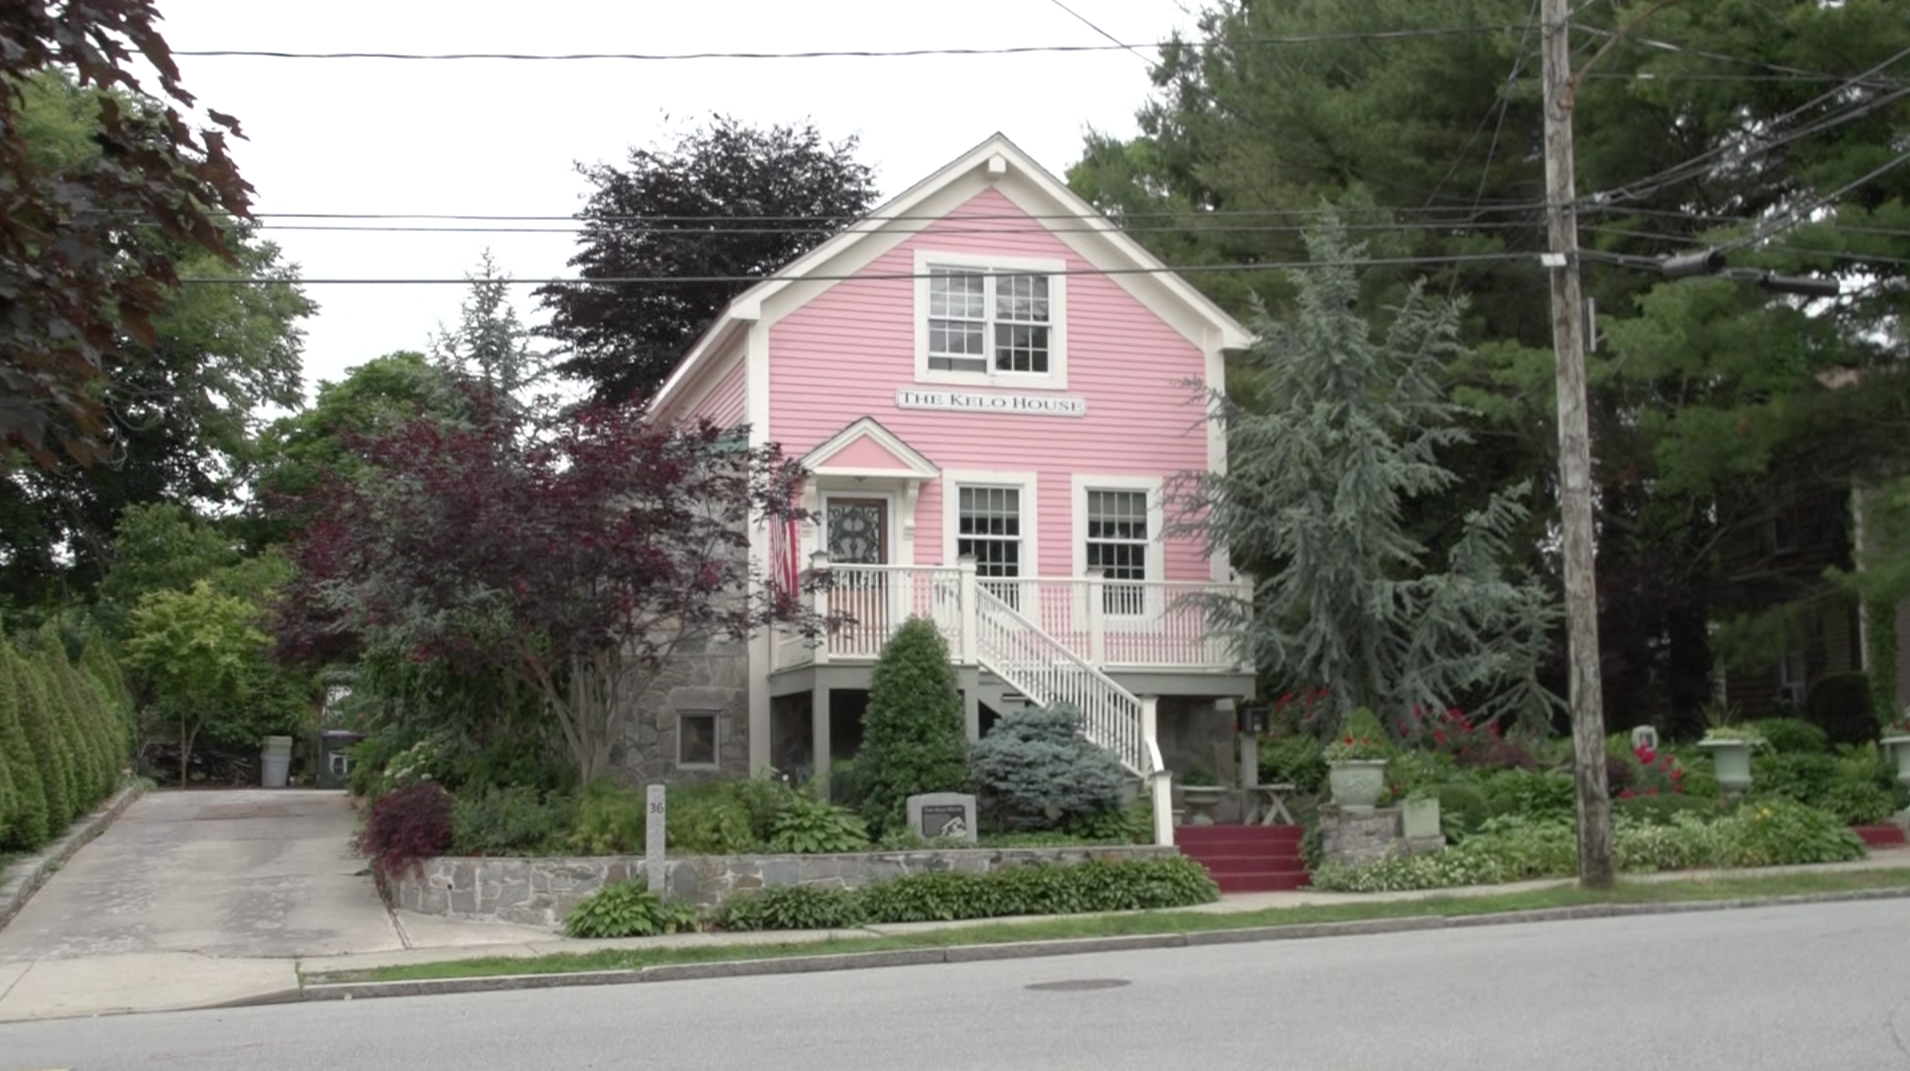 Susette Kelo's pink house at its new location on Franklin St. in New London.